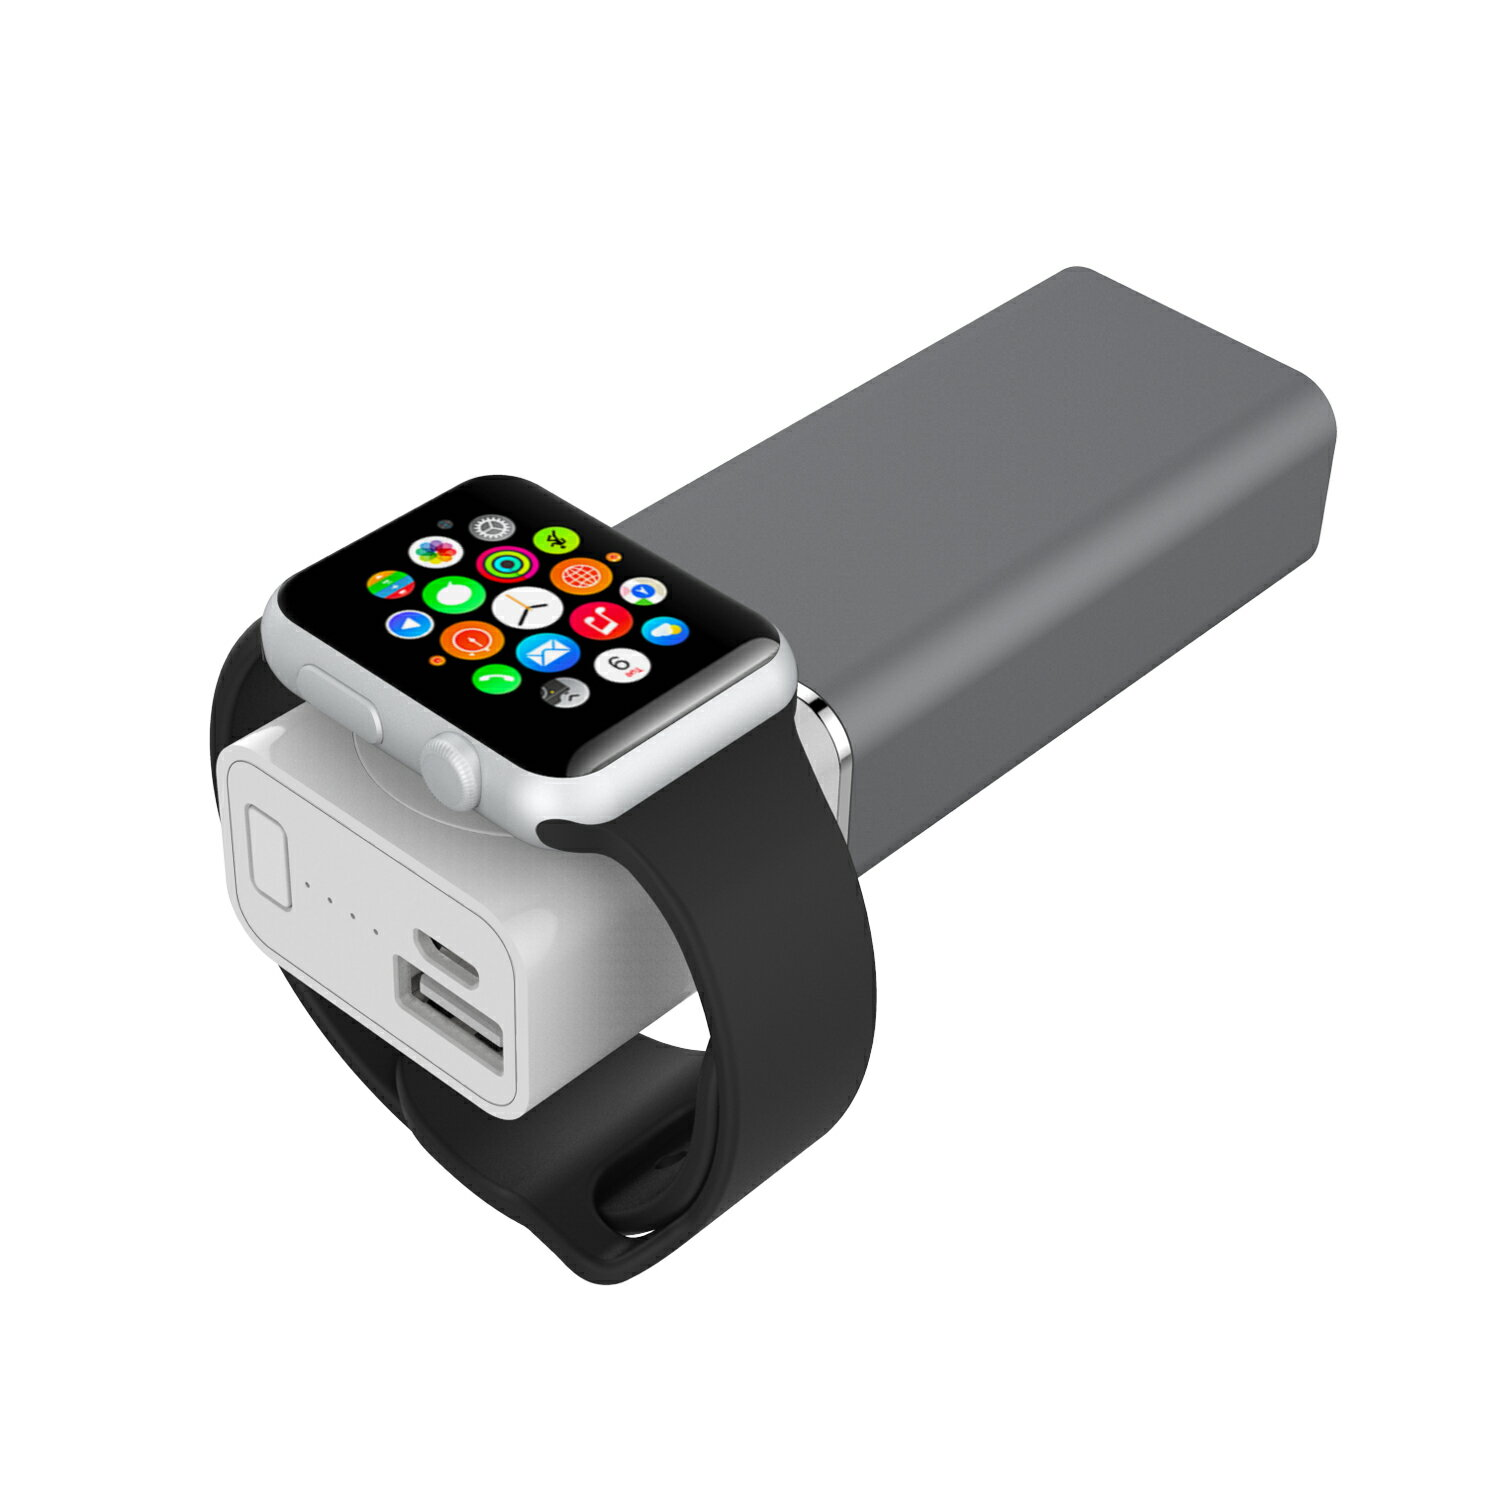 Element Works Dual USB Portable Charger And External Battery Pack for Apple Watch, iPhone, and Other Smartphones-Apple MFI Certified 6